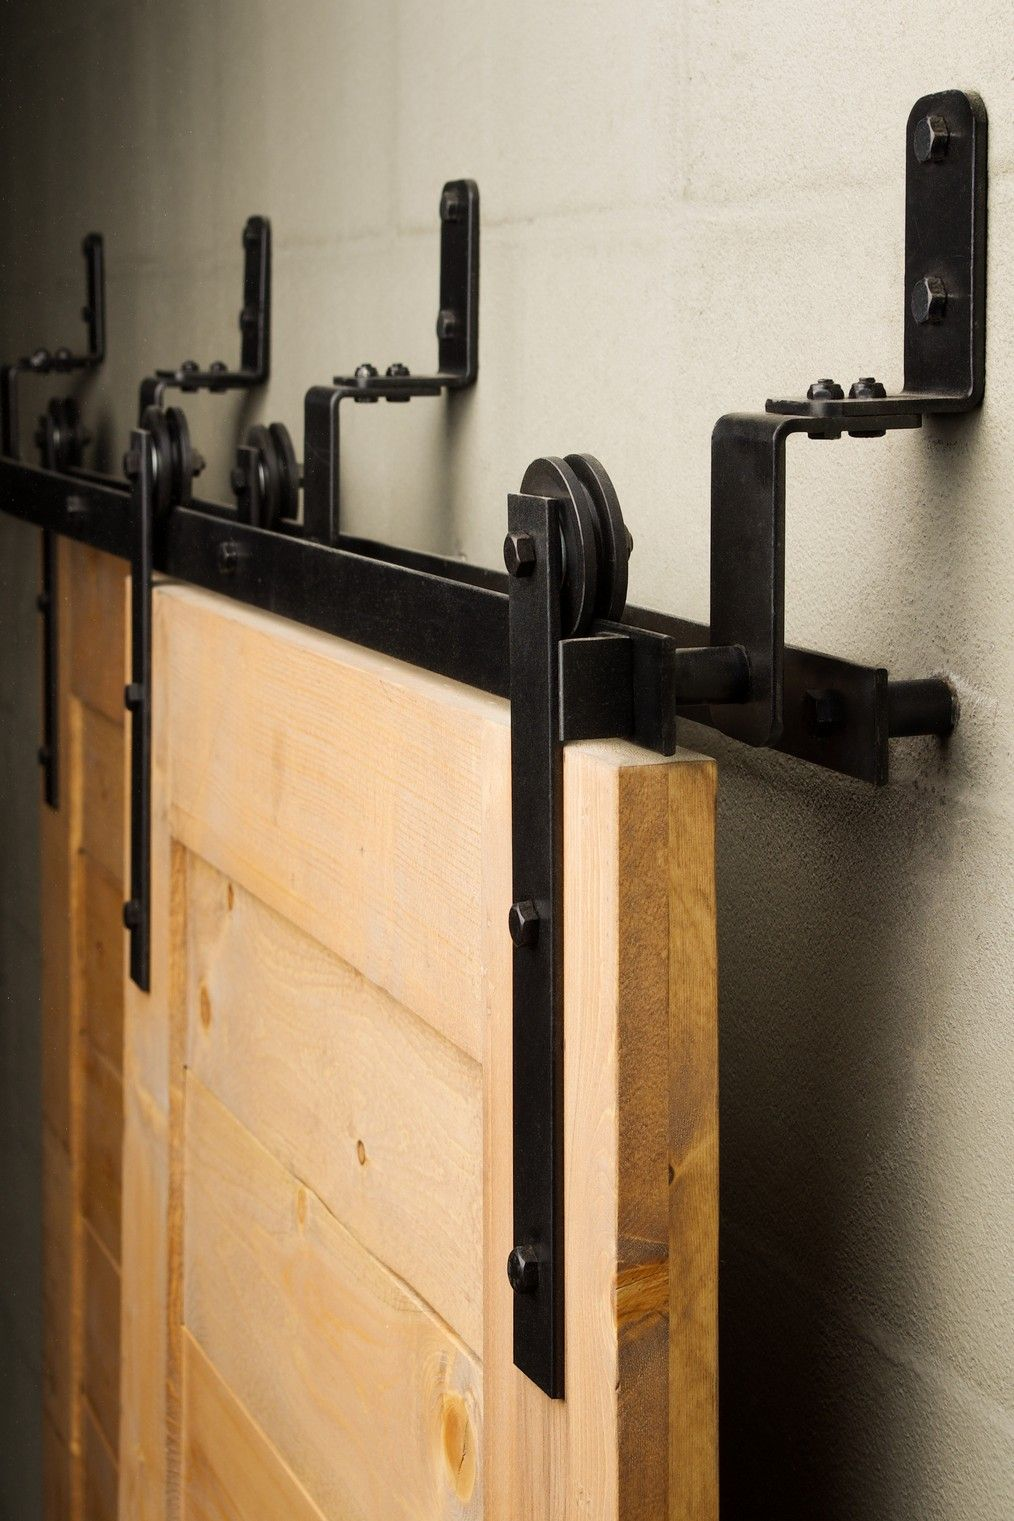 Bypass Barn Door Hardware The Bypass Sliding Barn Door Hardware Is Efficient In Tight Spaces